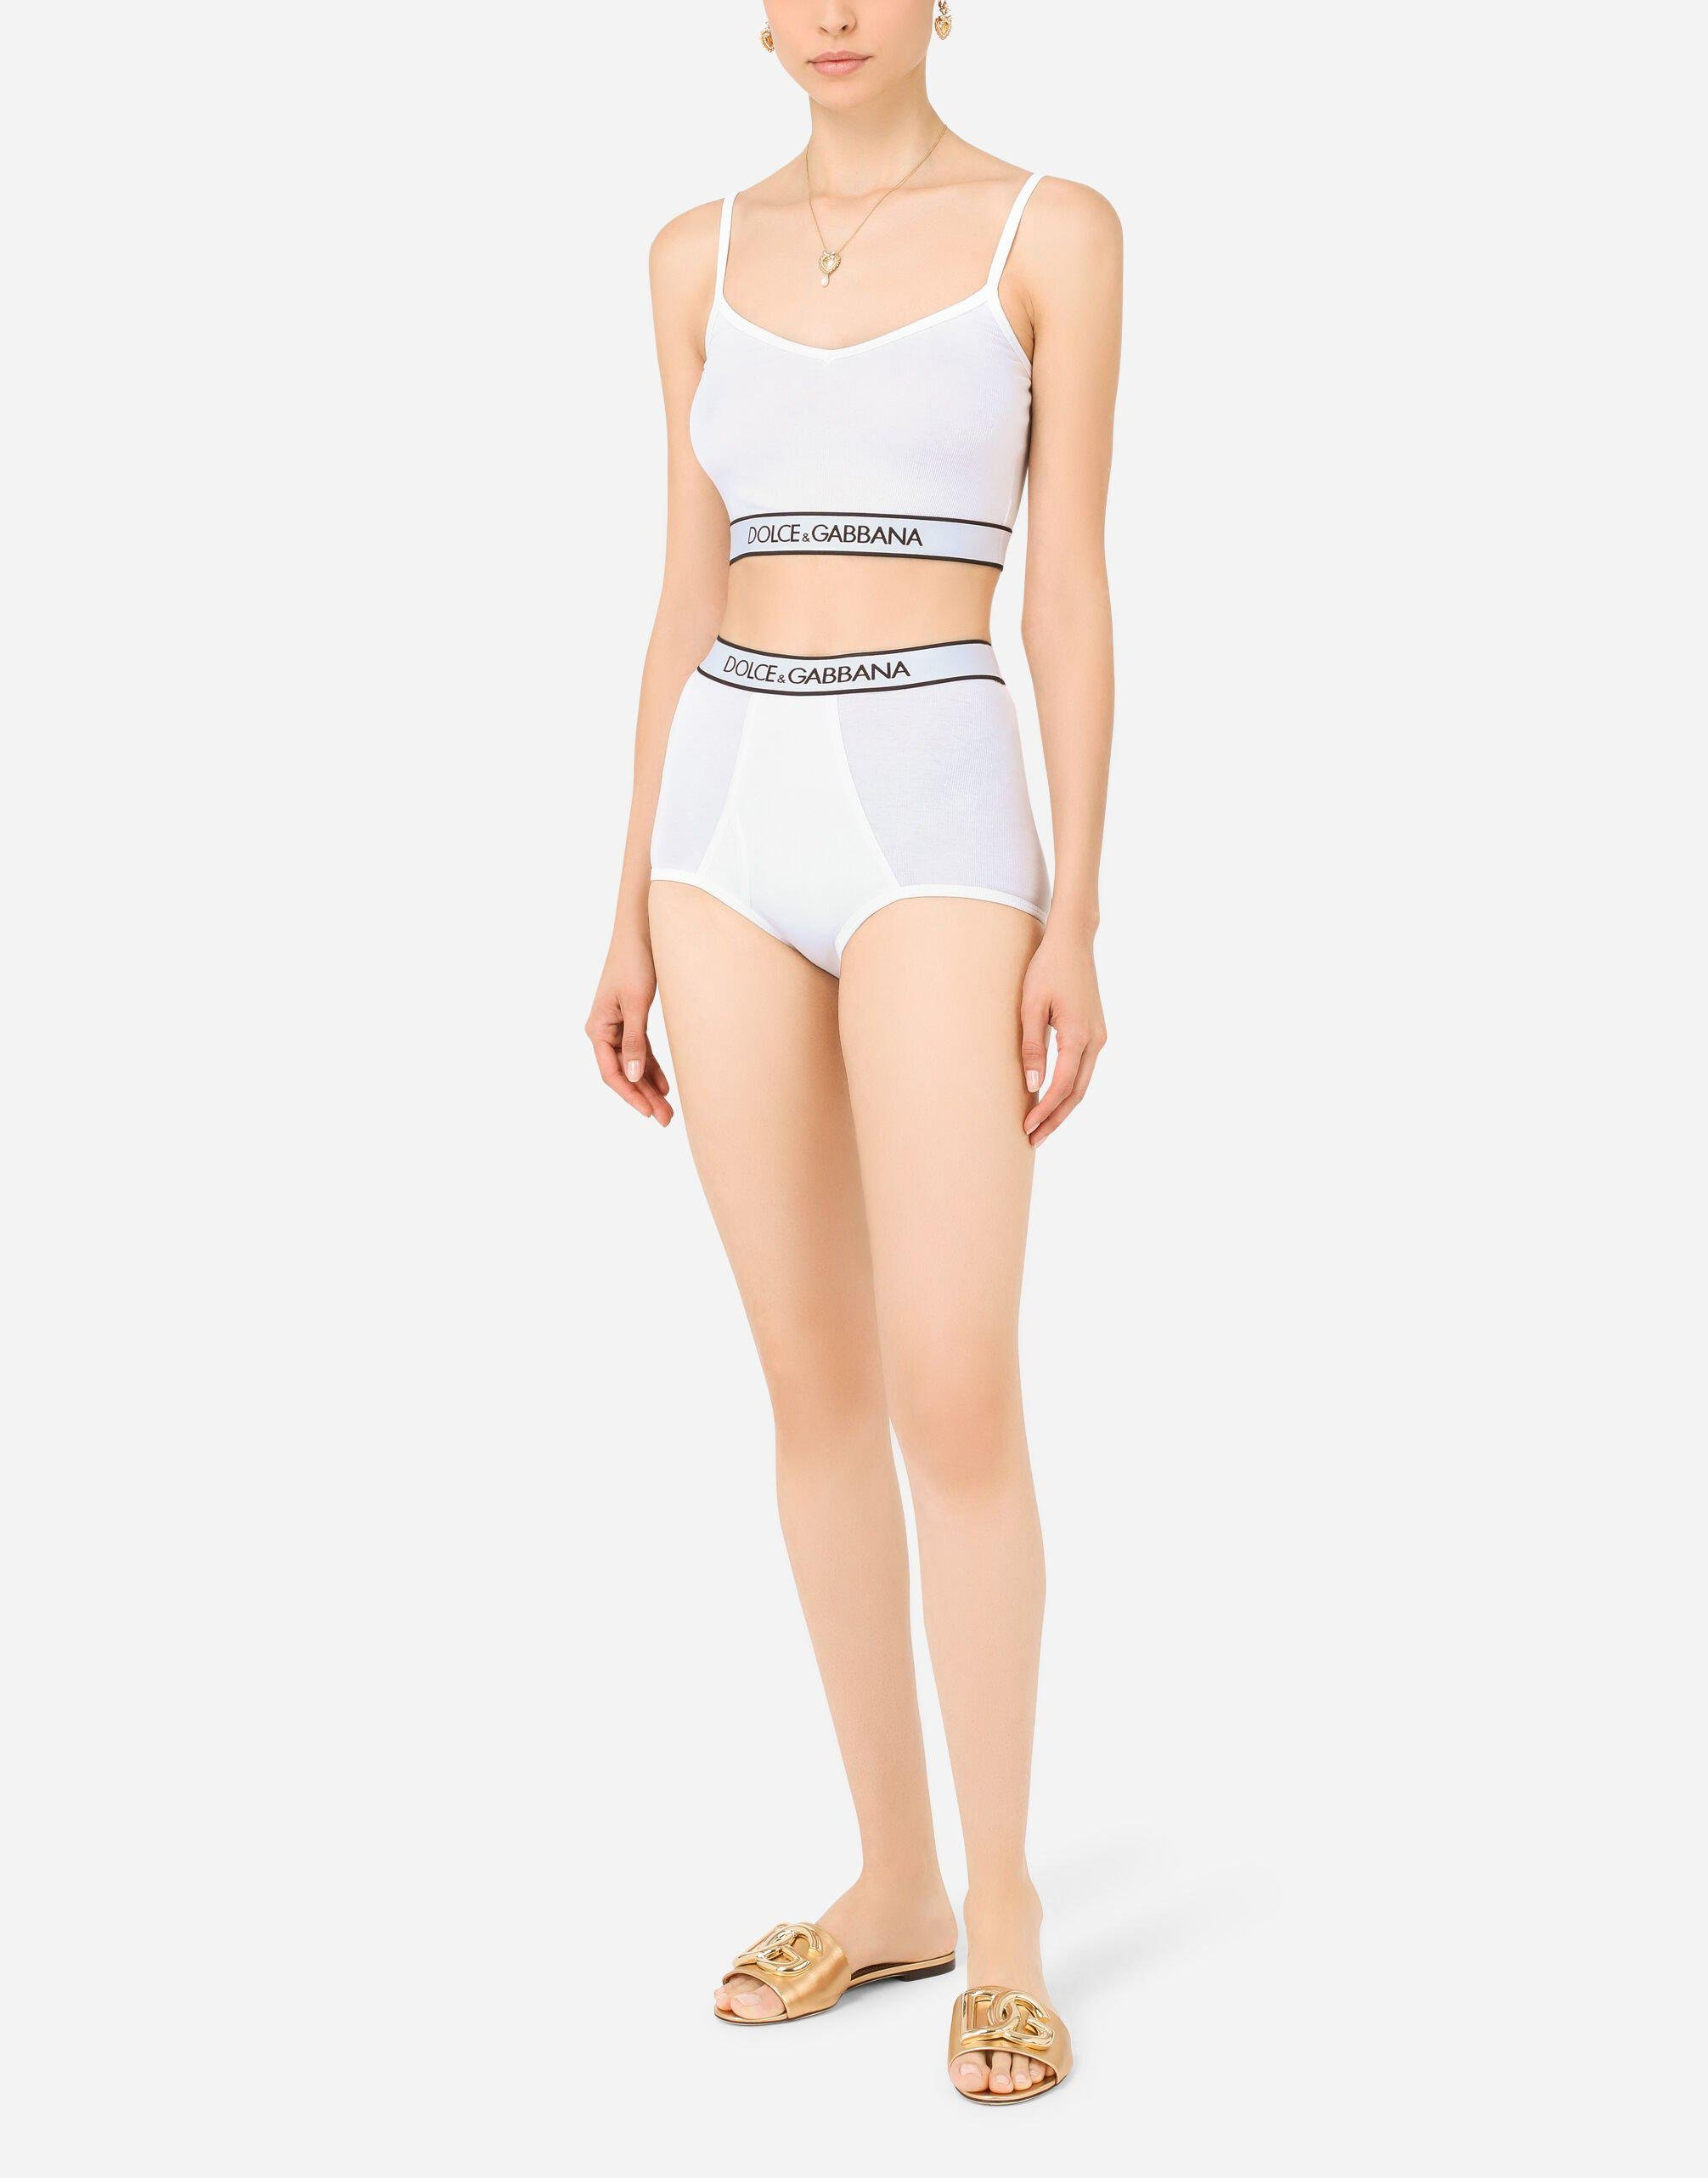 Fine-rib jersey top with spaghetti straps and branded elastic